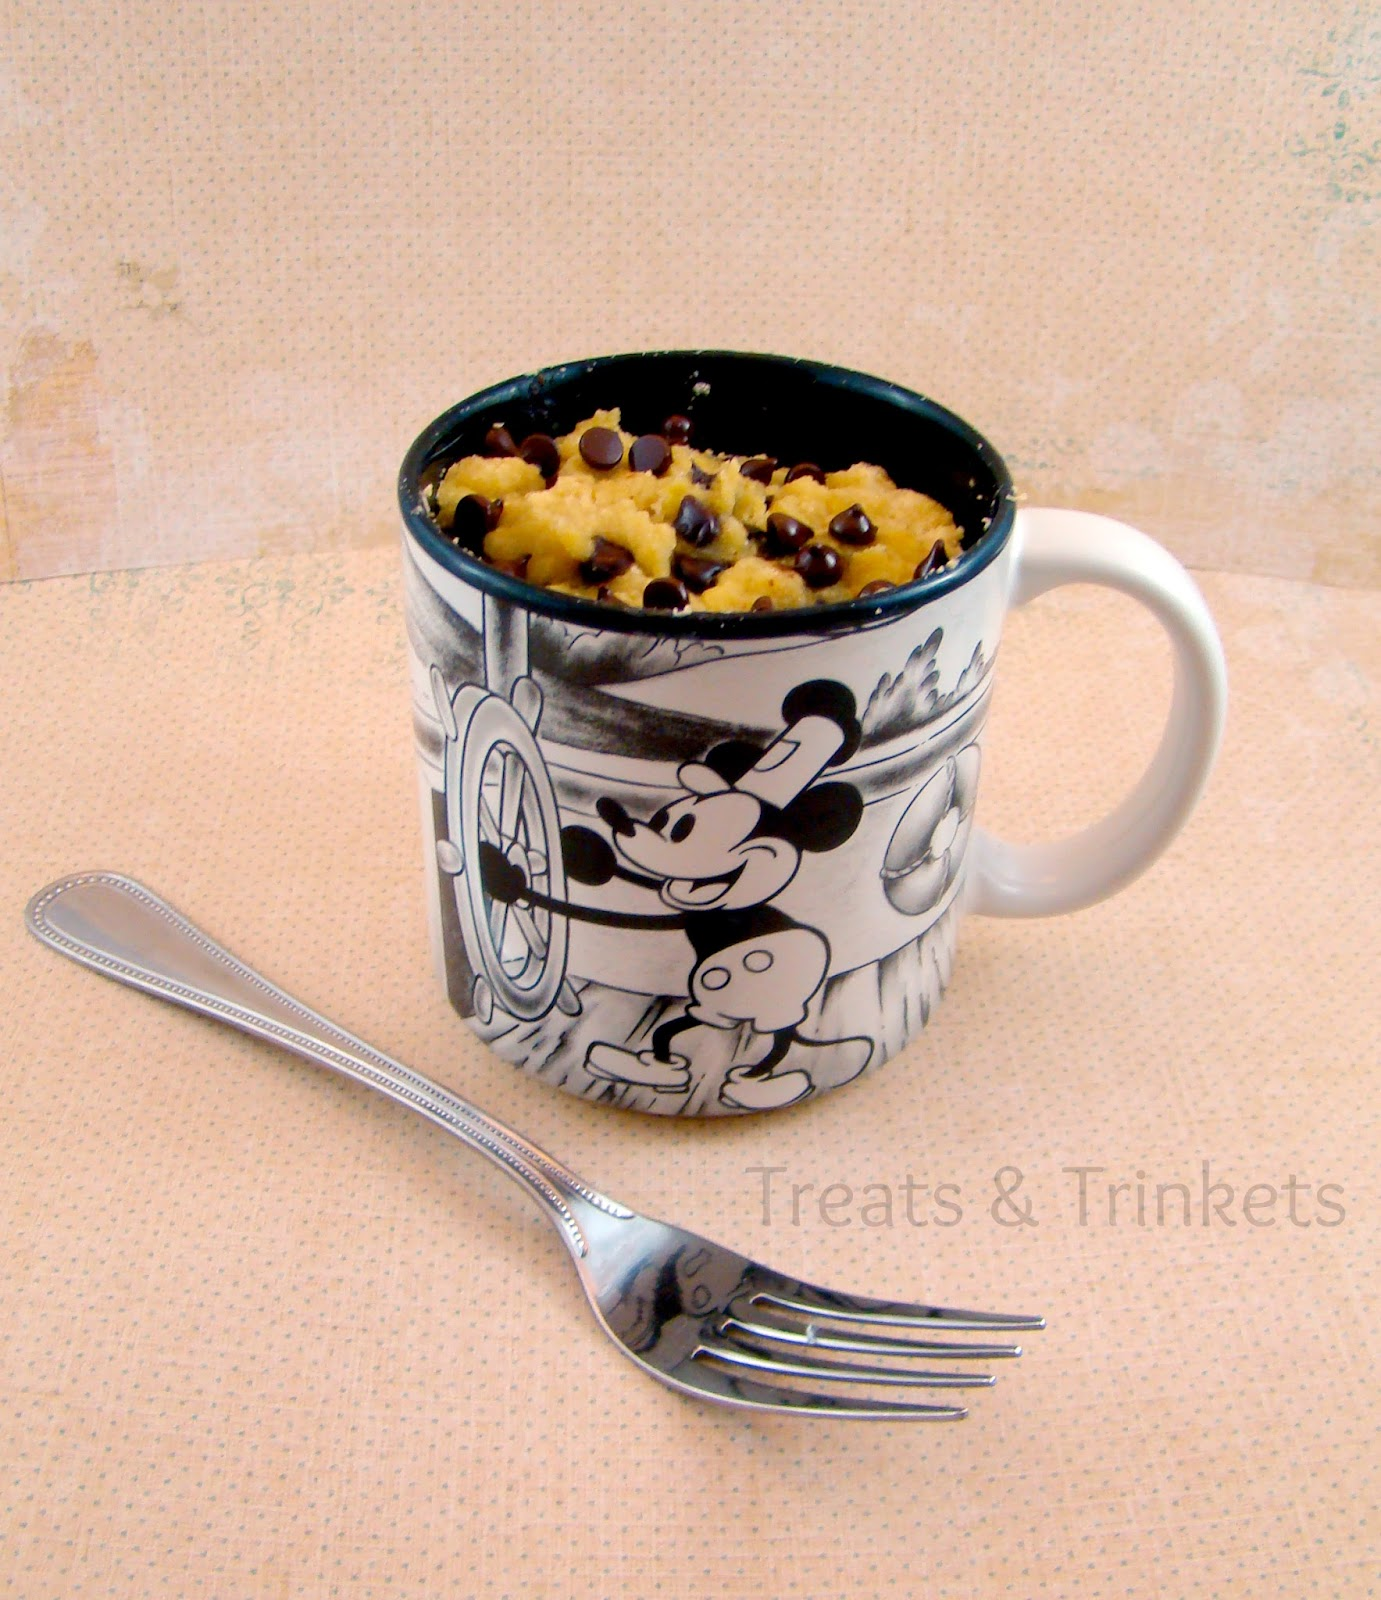 Treats & Trinkets: Banana Chocolate Chip Mug Cake